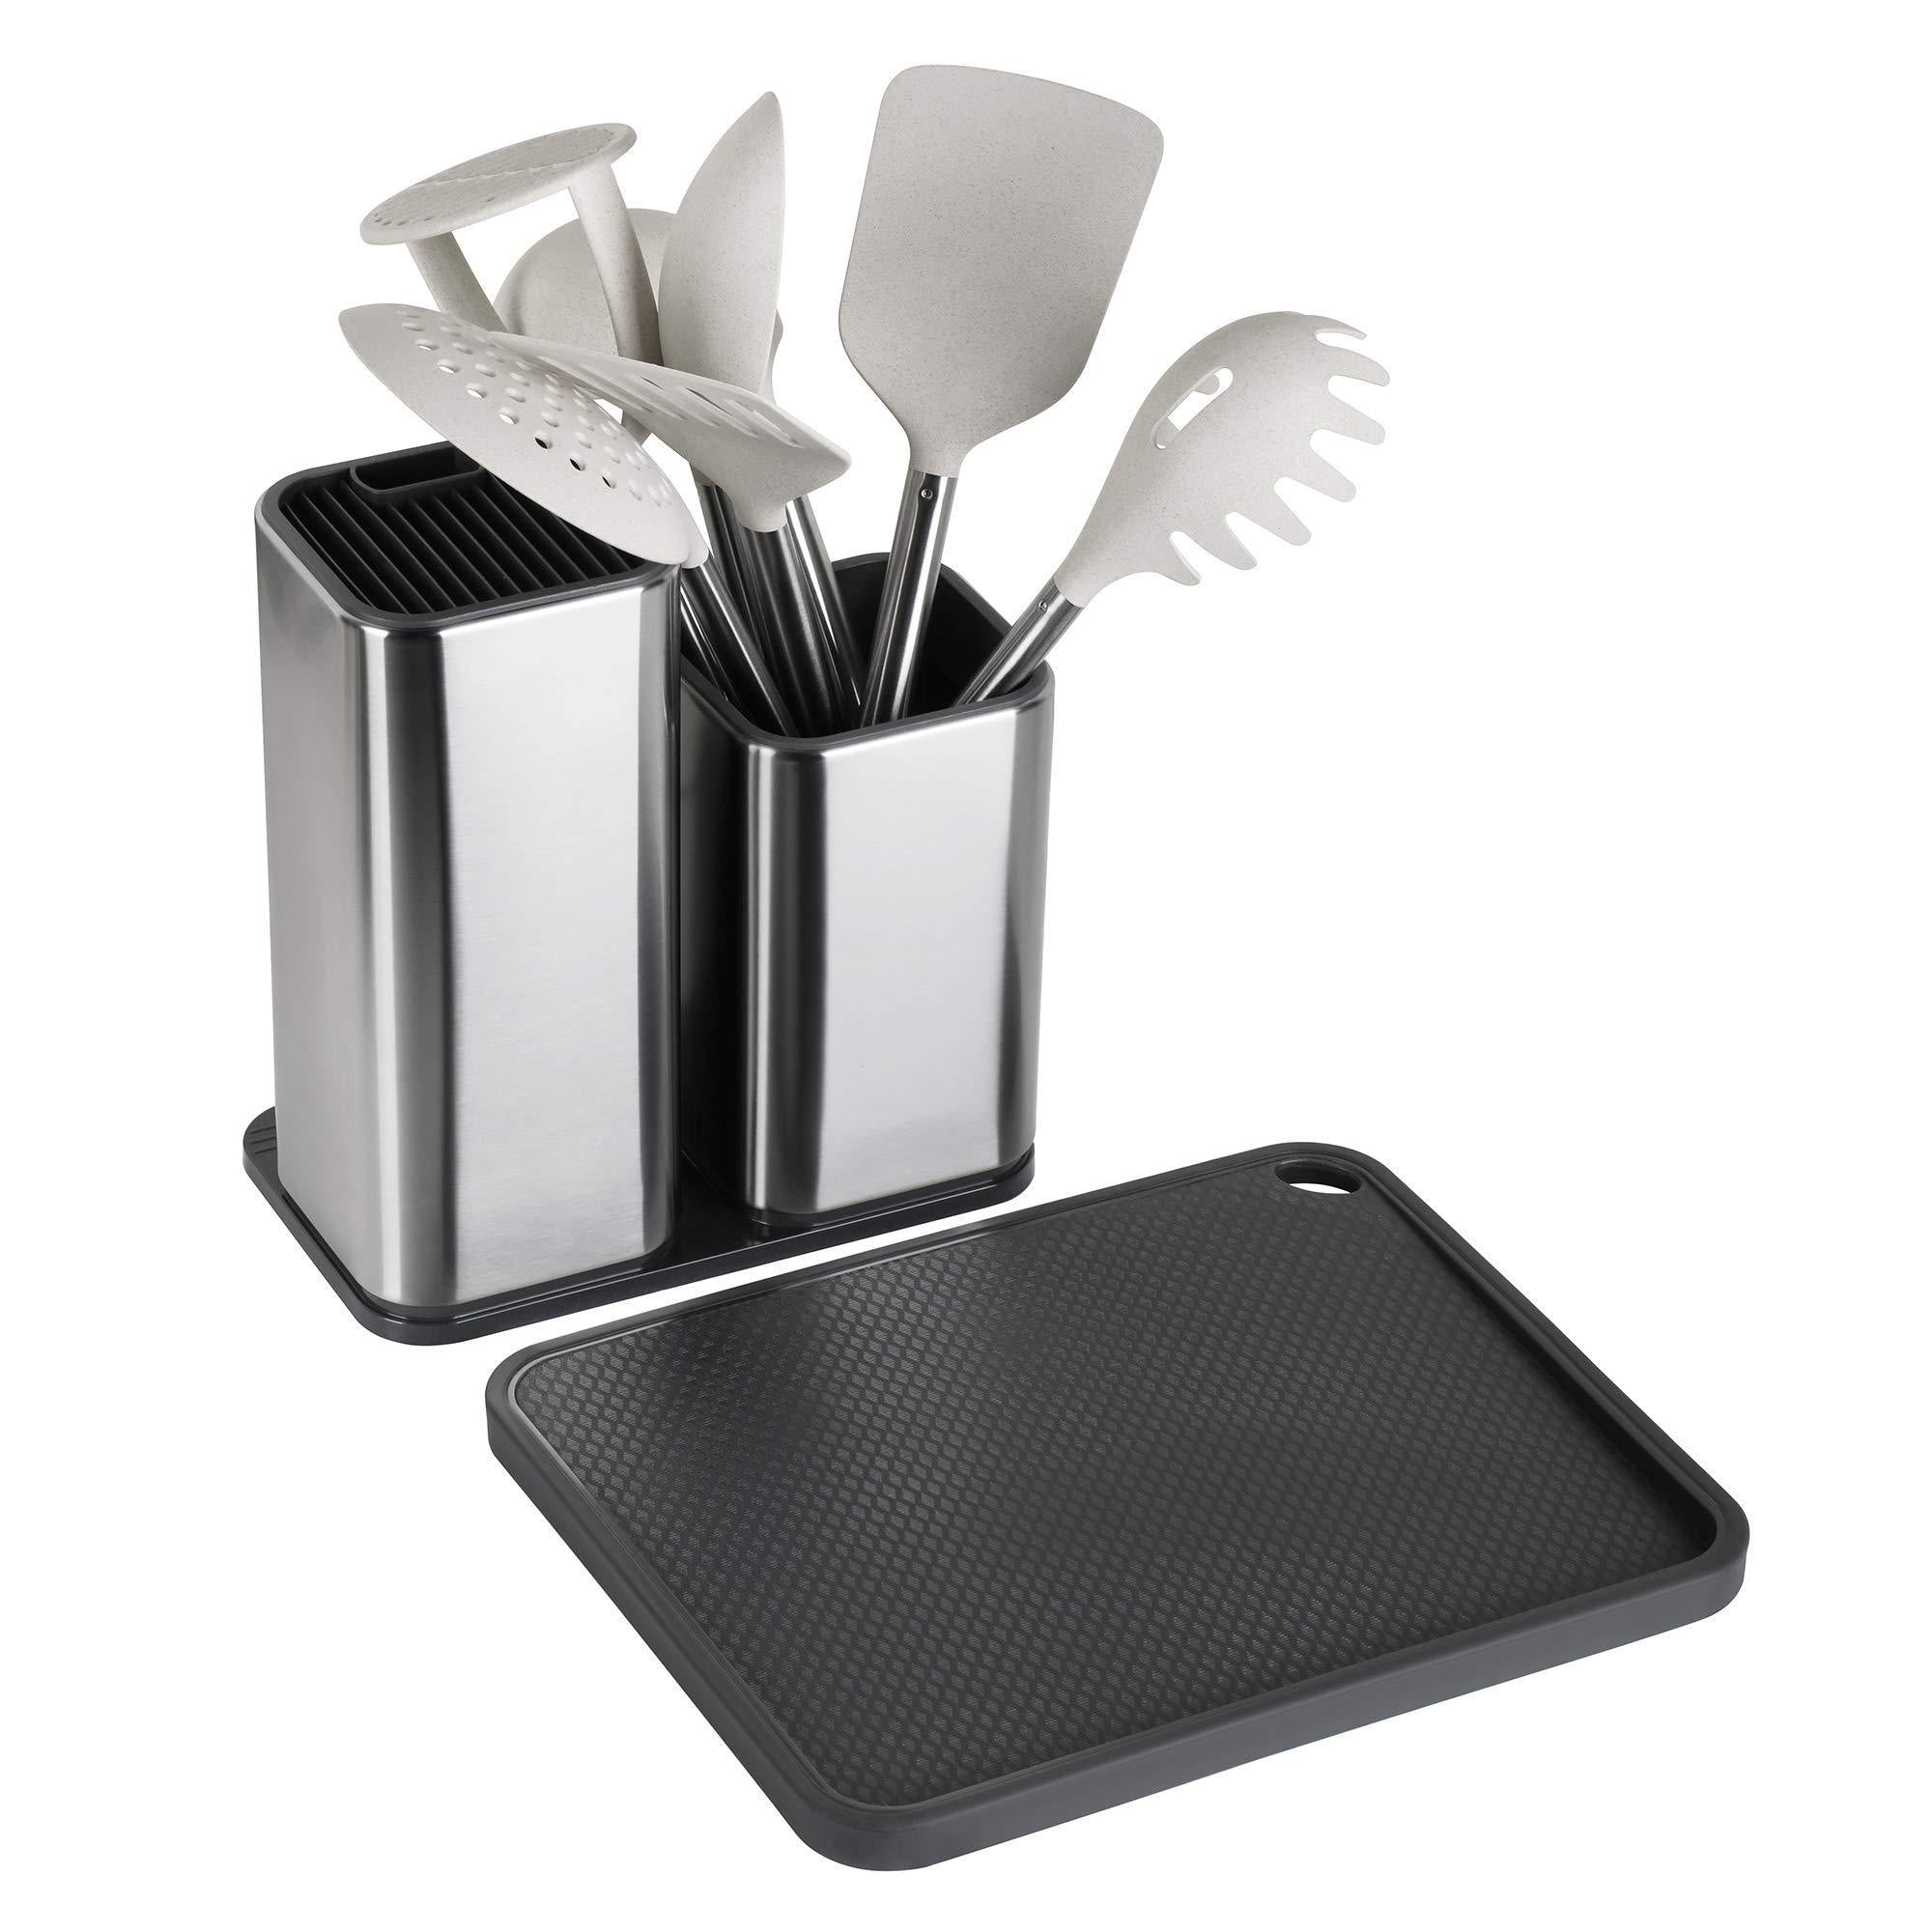 Buy elfrhino utensils holder with cooking utensils set knives block utensils container flatware caddy cookware cutlery multipurpose kitchen storage crock slotted spoon spatula spaghetti server set of 10